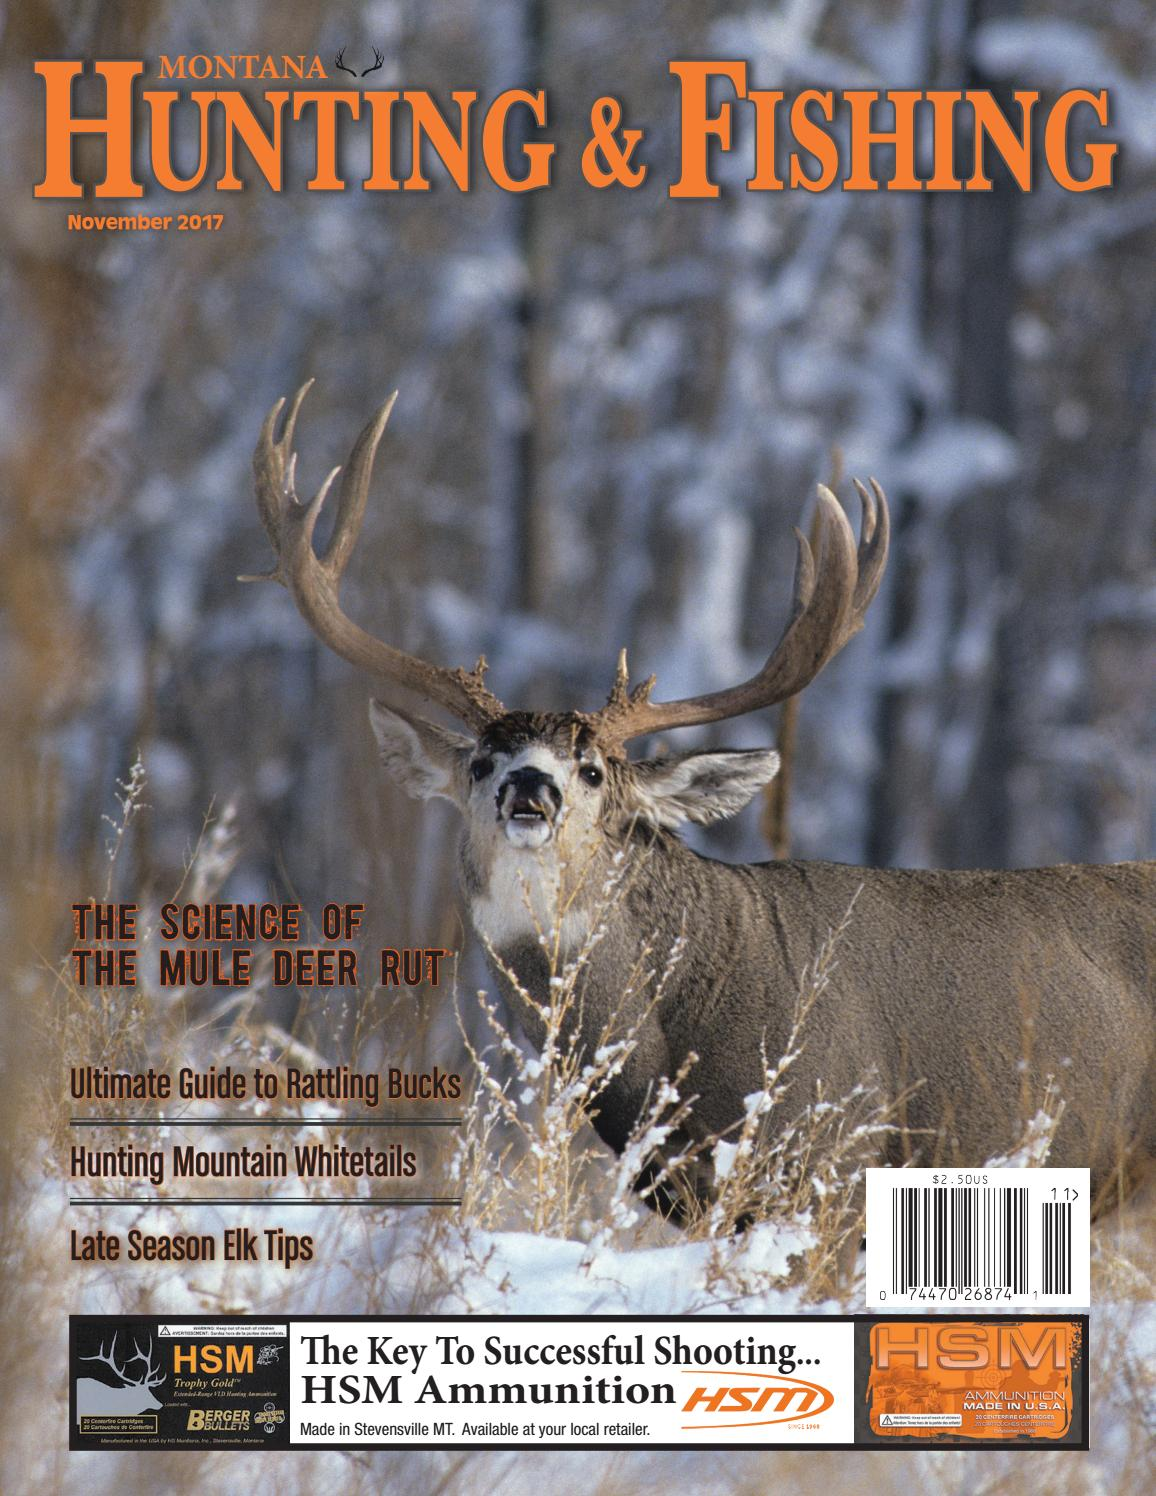 127a216ead0 Montana Hunting   Fishing News - November 2017 by Amy Haggerty - issuu